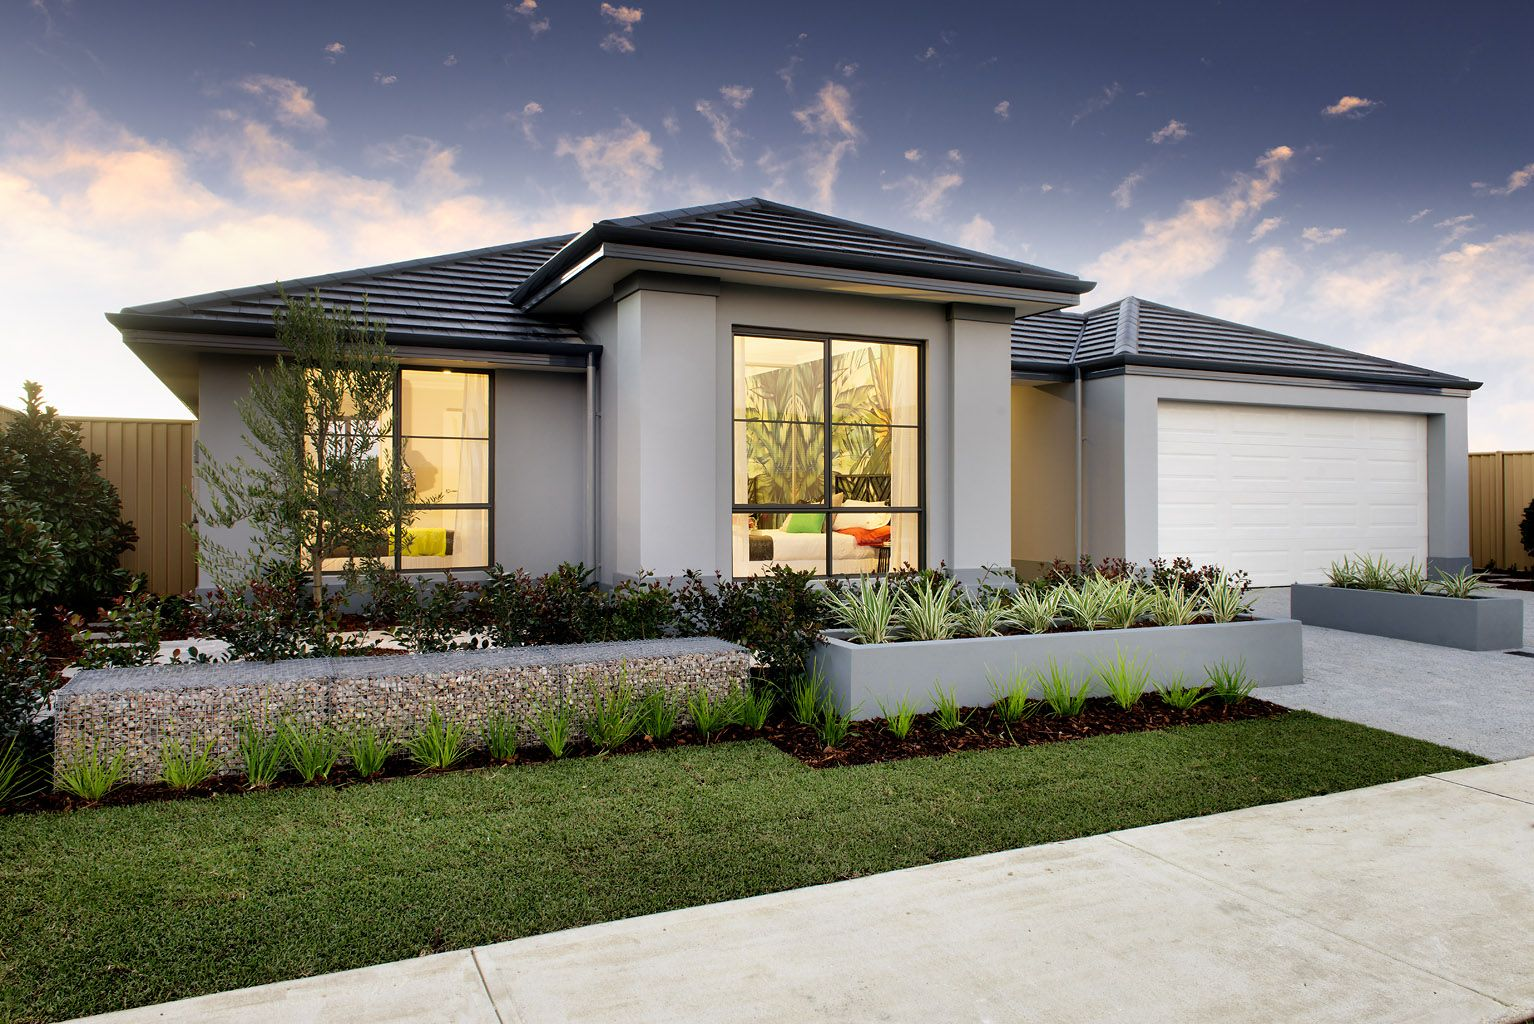 The Casablanca Dale Alcock Homes Our Display Homes